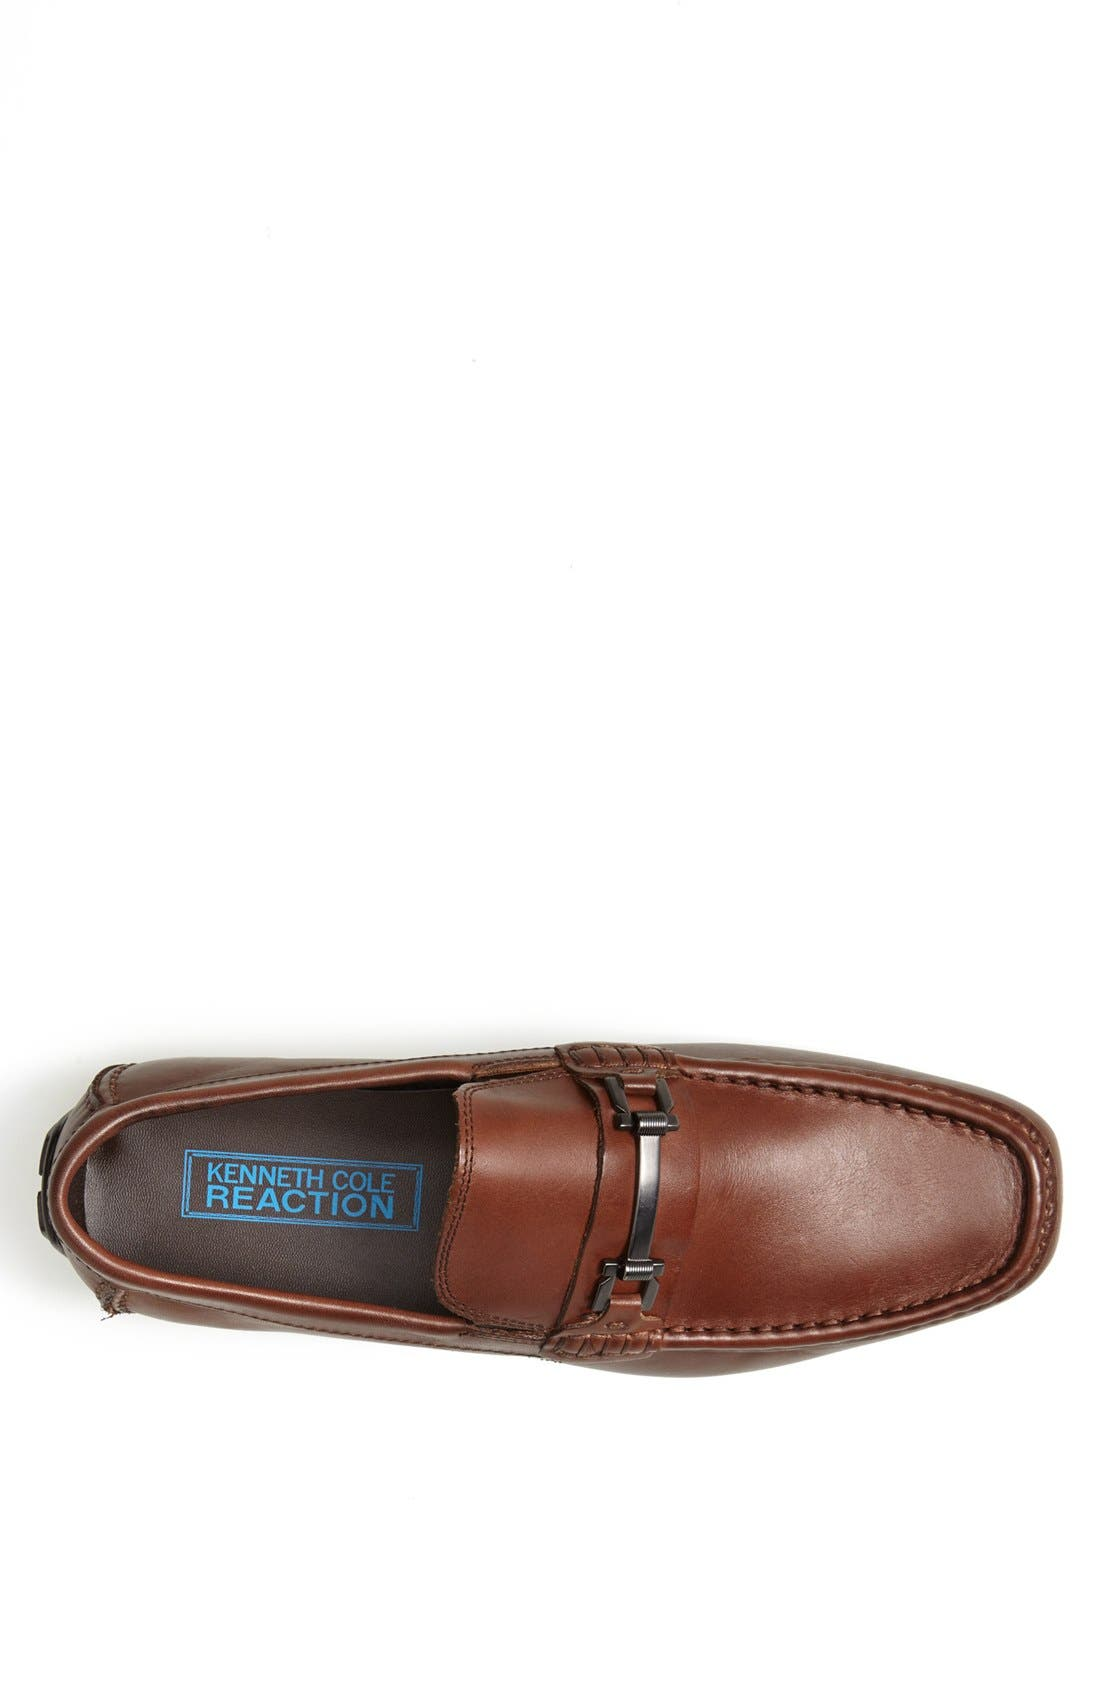 Alternate Image 3  - Kenneth Cole Reaction 'Heavy Traffic' Driving Loafer